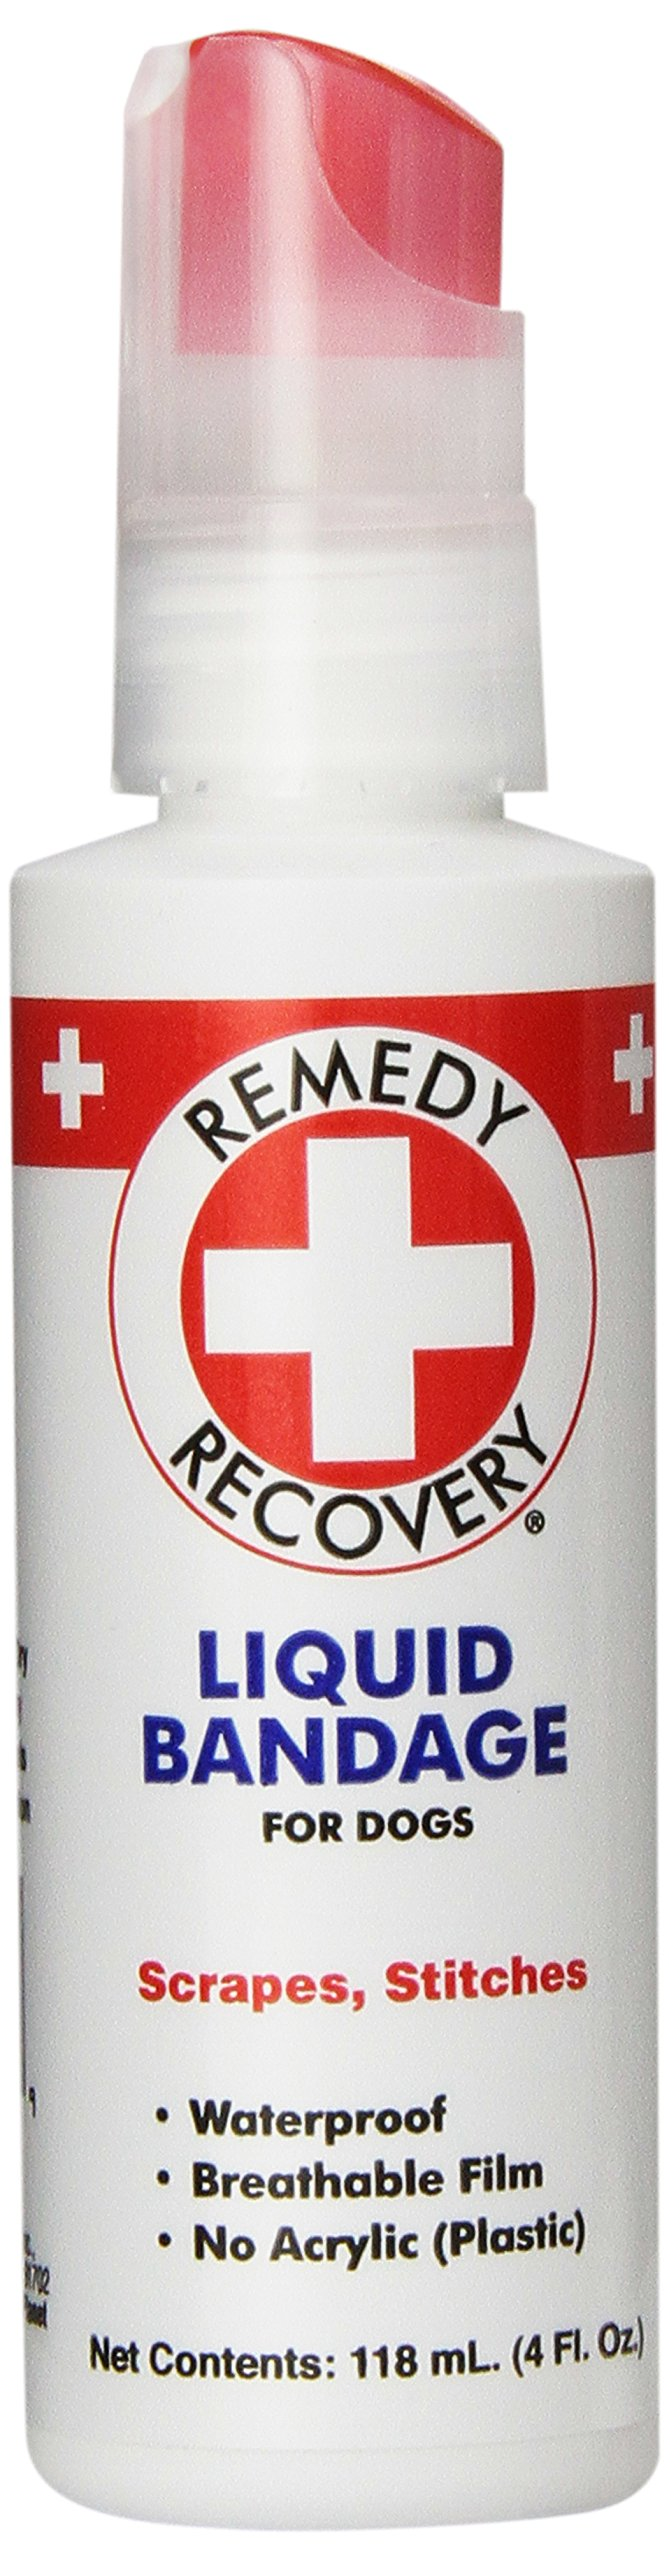 Remedy and Recovery Liquid Bandage for Dogs Image